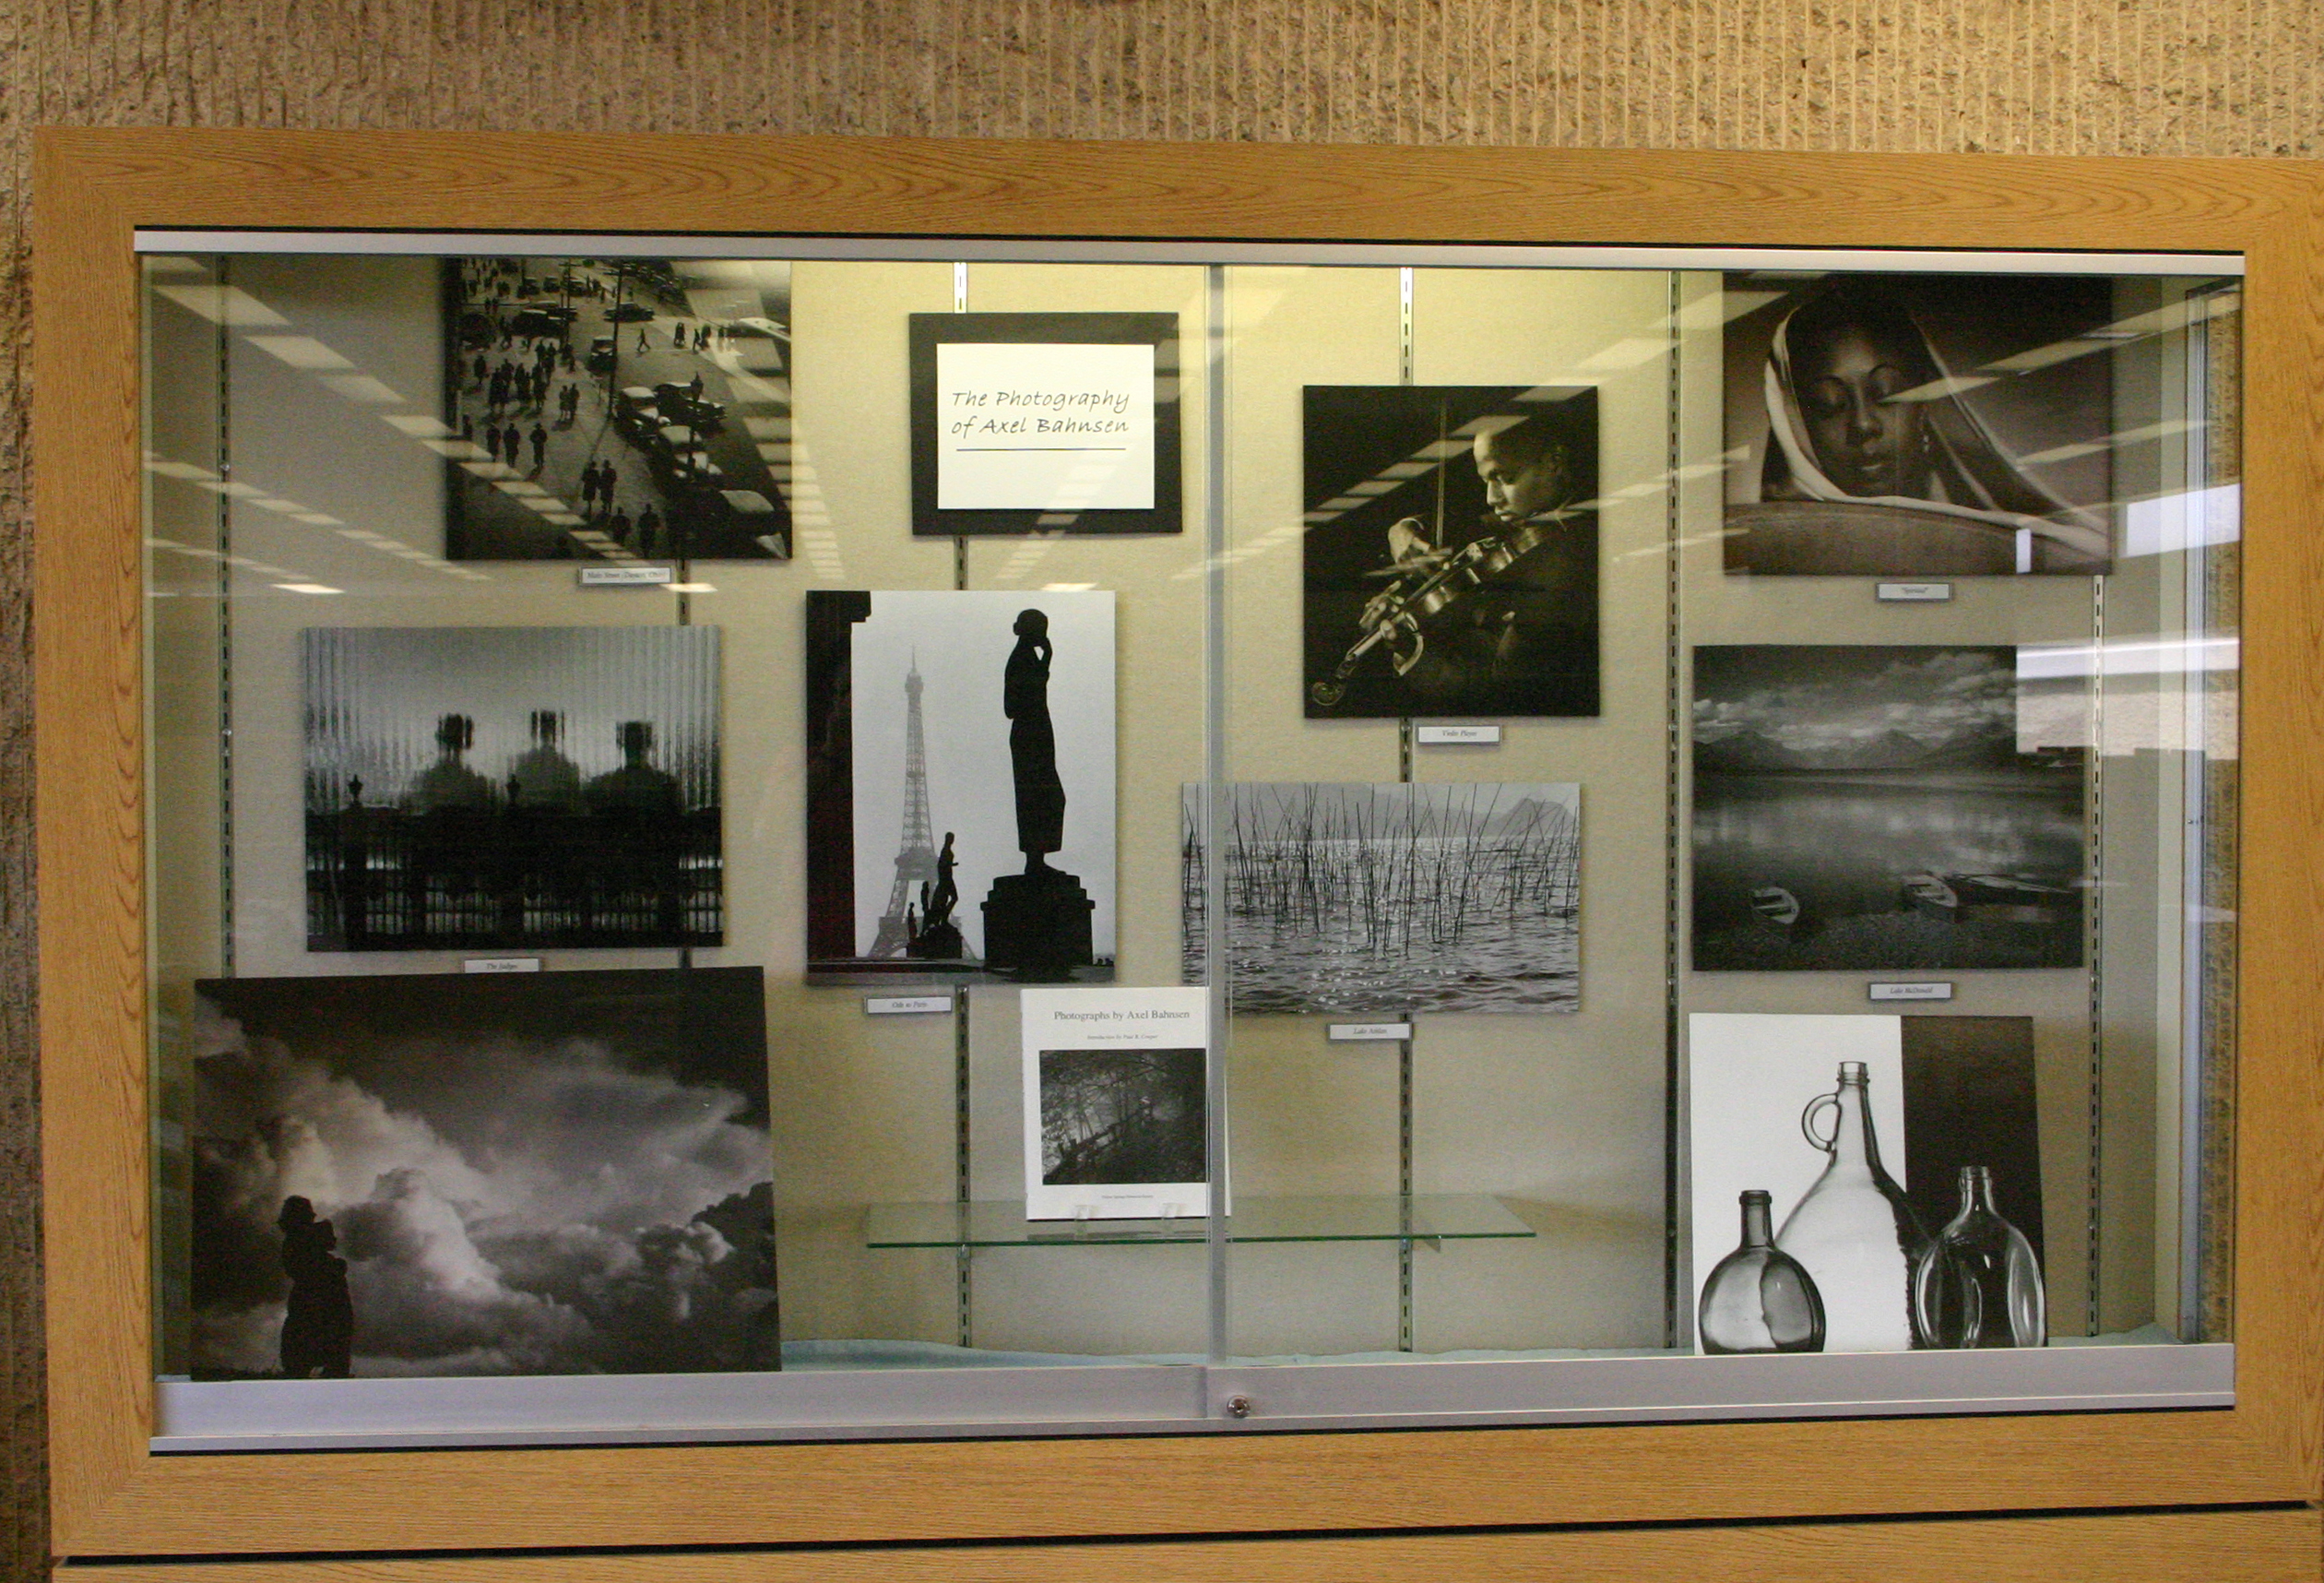 2013-05-31 Bahnsen photography exhibit IMG_1757